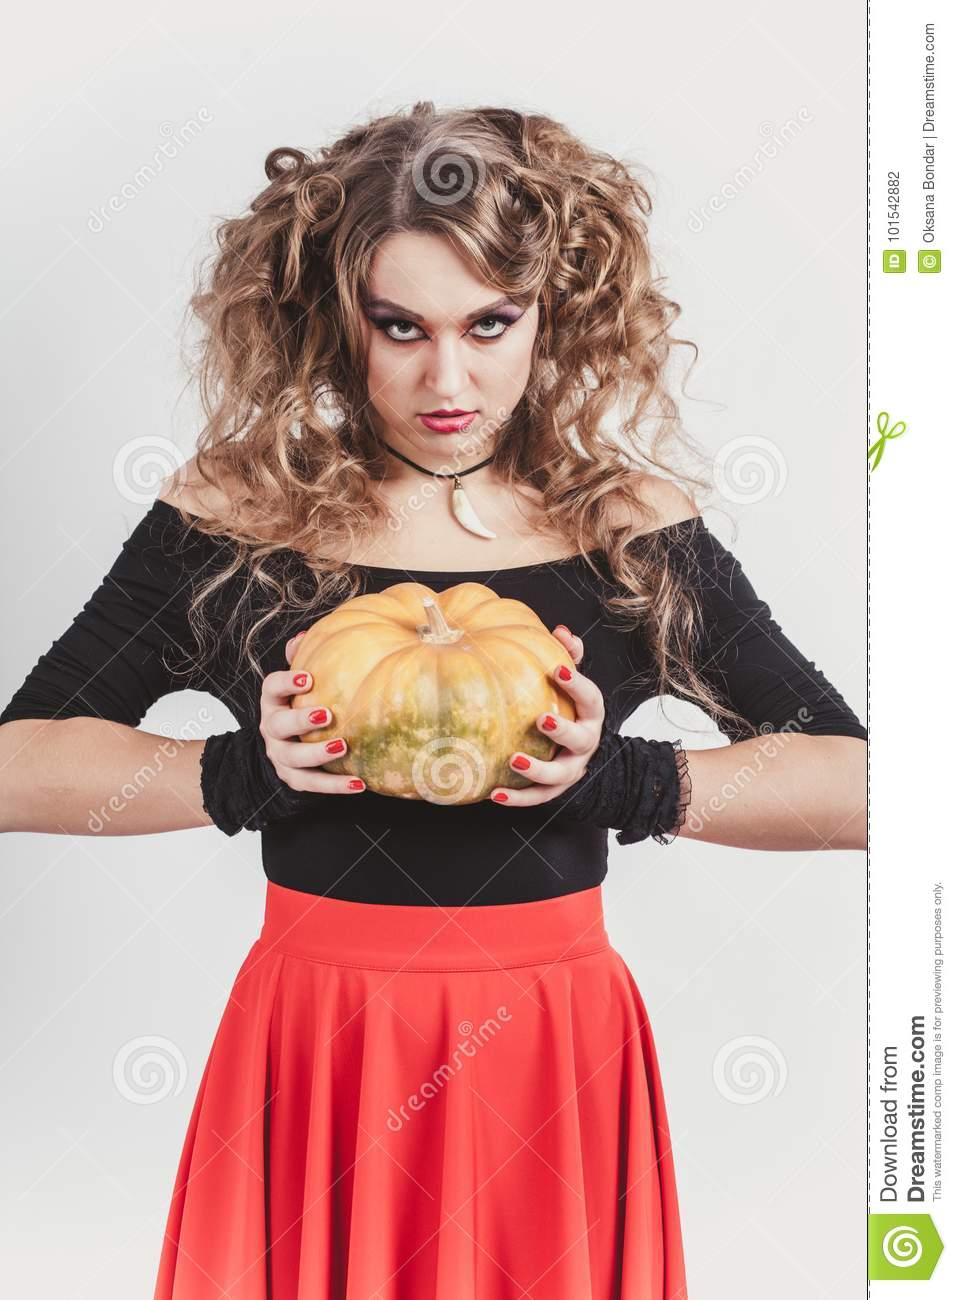 677e21b975 Portrait of woman holding in hands orange pumpkin isolated on gray  background. Wearing black blouse and red skirt. Halloween celebration.  Vertical shot